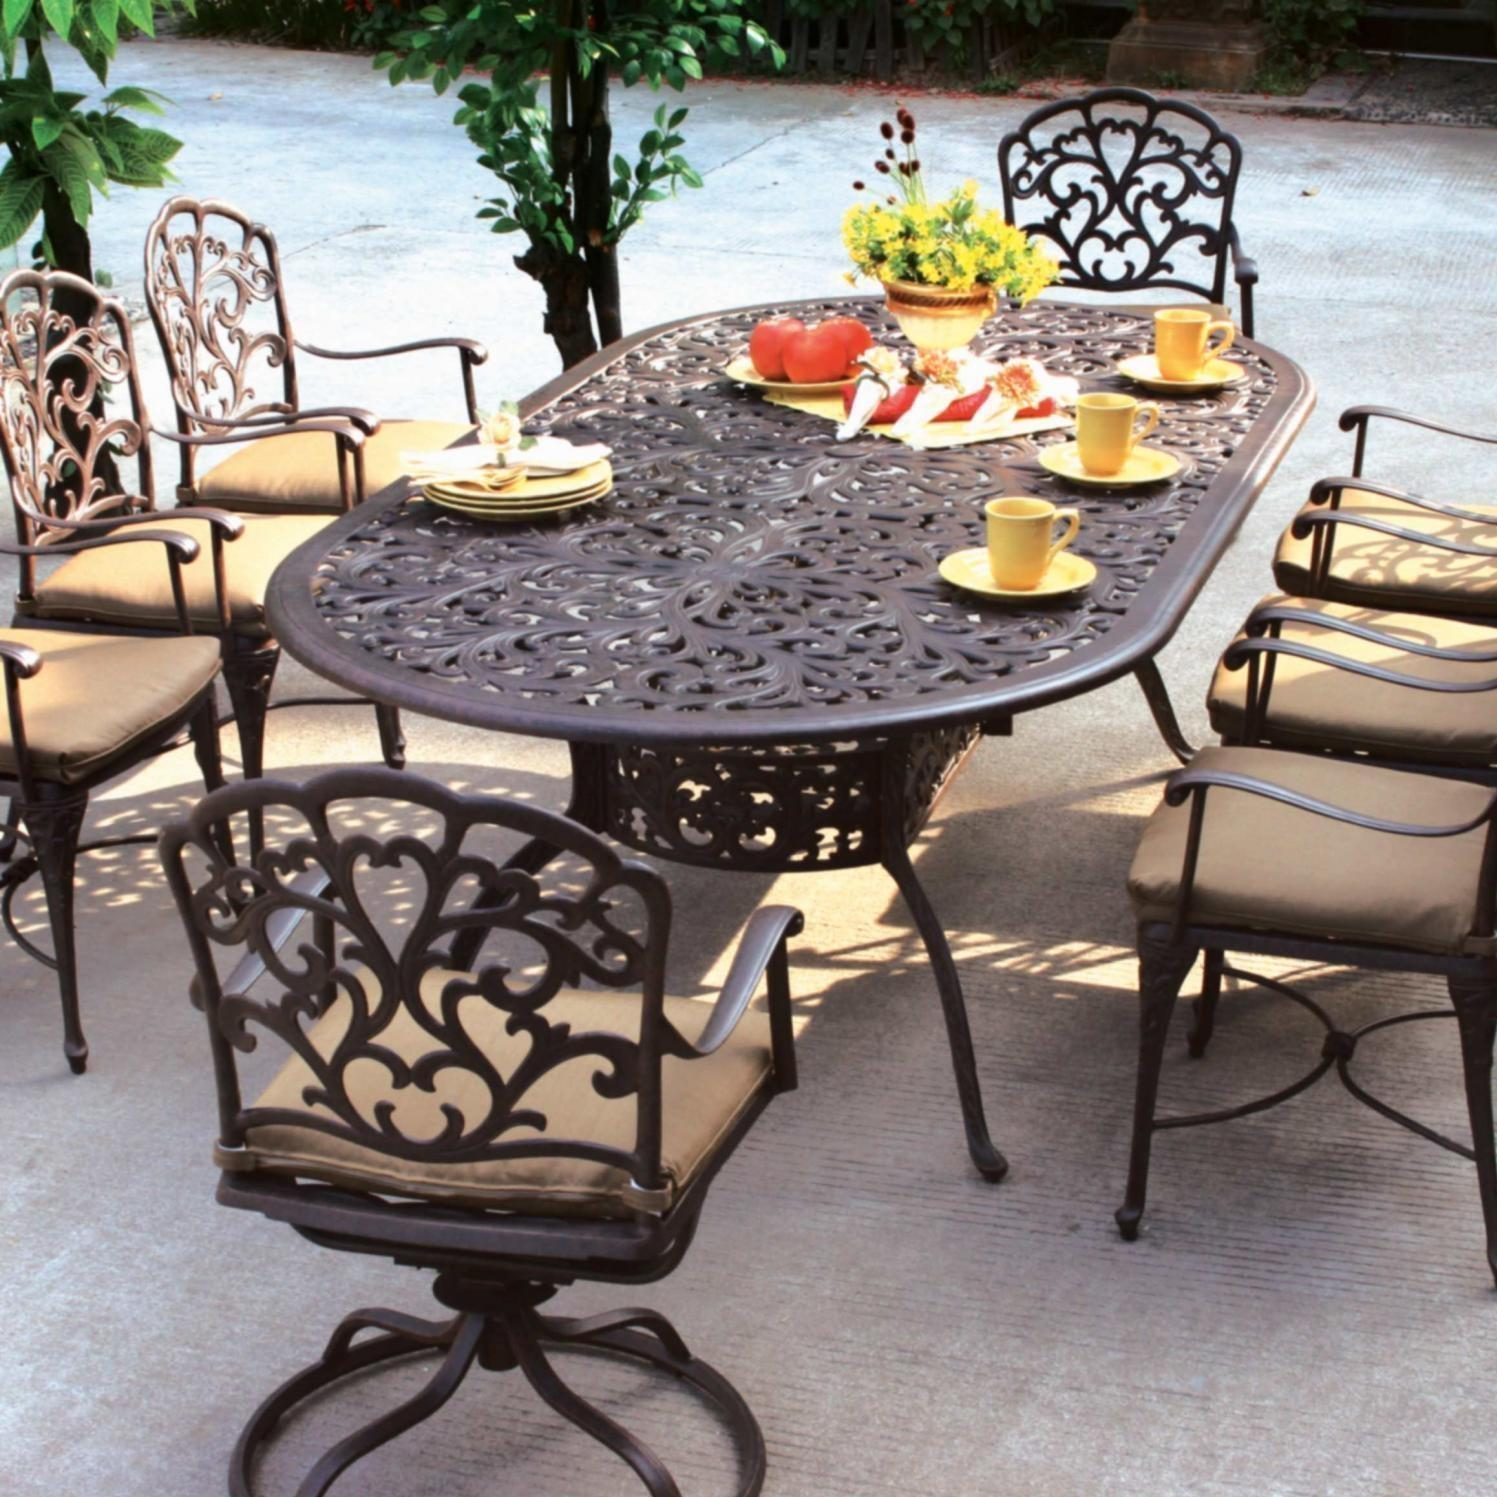 Darlee Catalina 8-Person Patio Dining Set - Antique Bronze